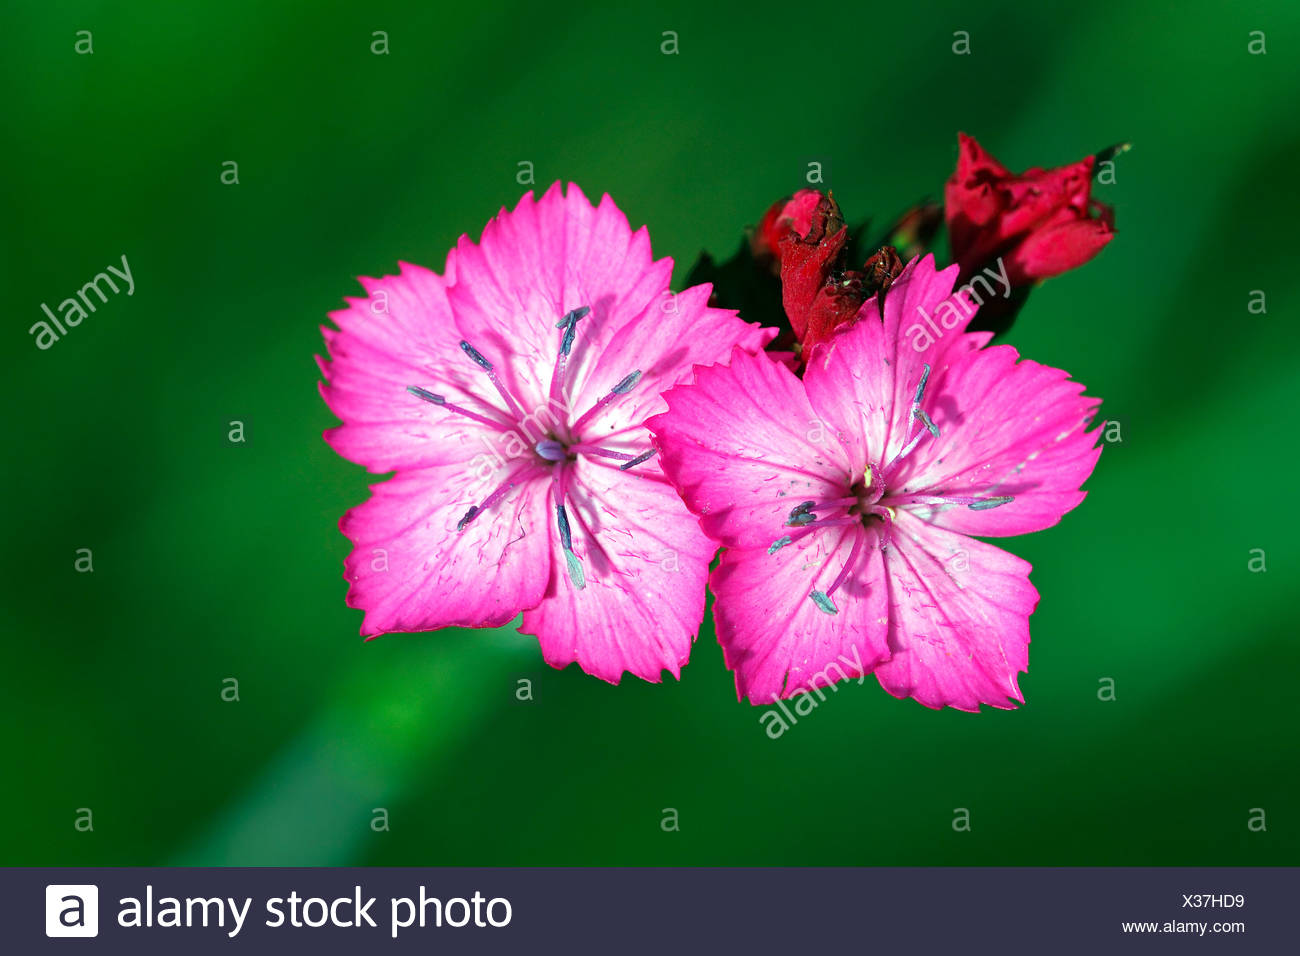 Carthusian Pink (Dianthus carthusianorum) Stock Photo